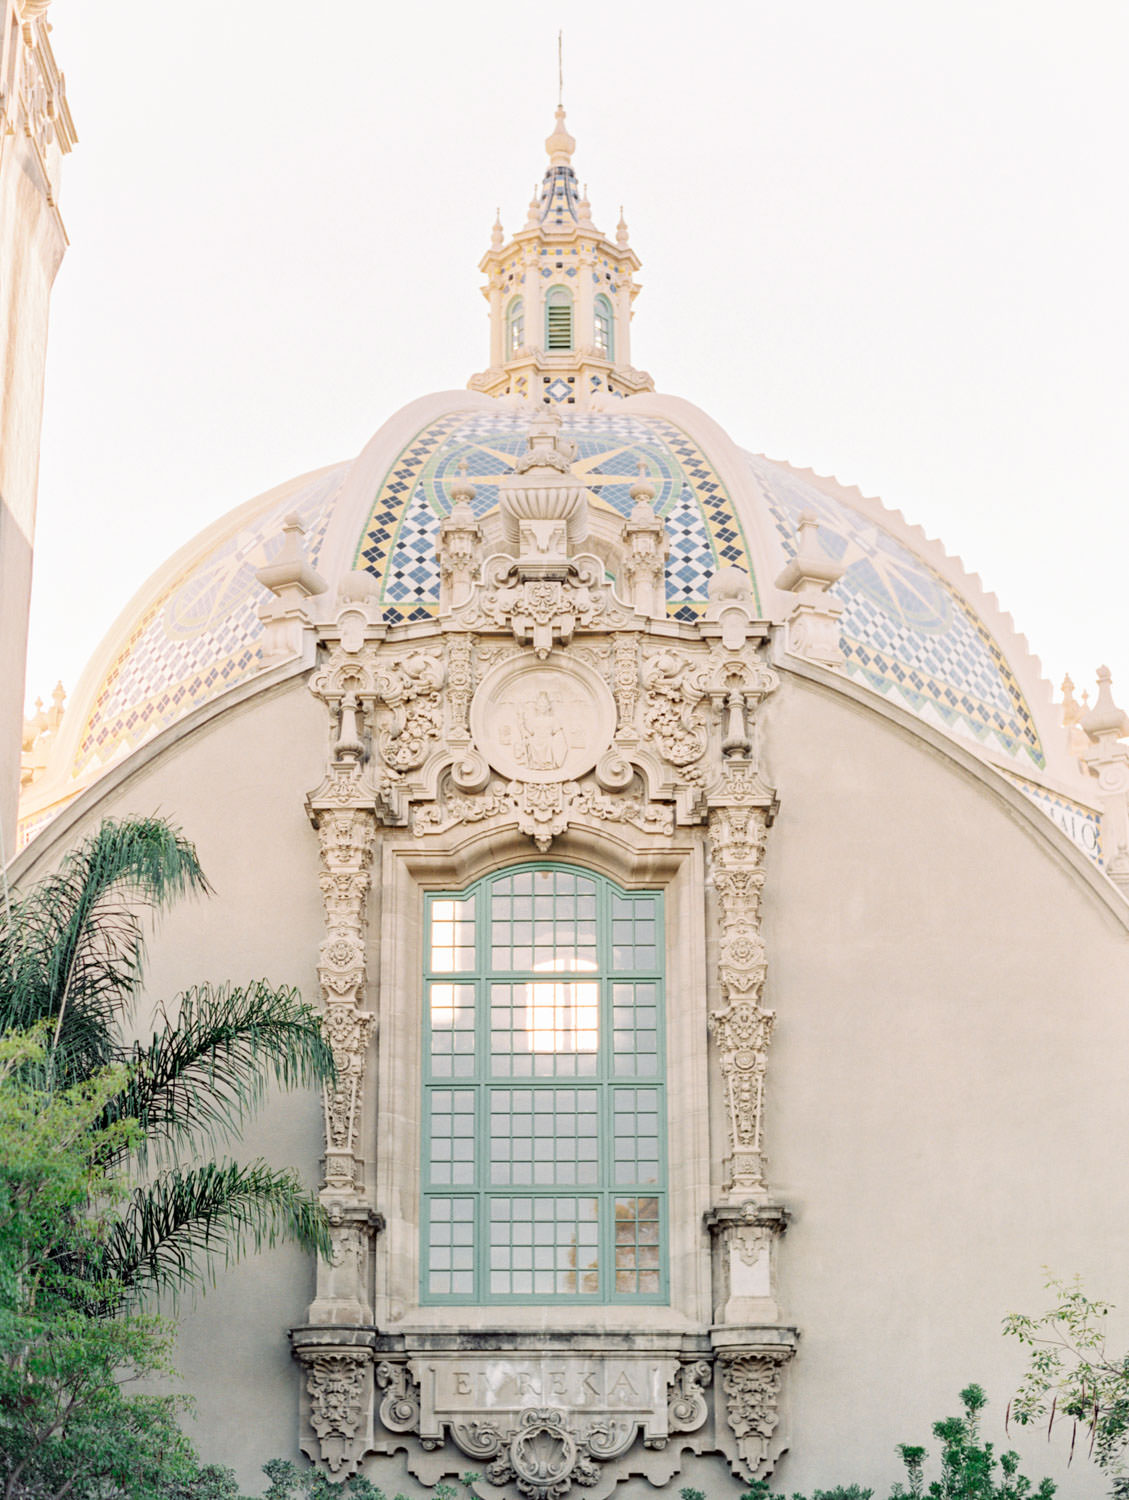 Engagement photos at Balboa Park bell tower, film photographer Cavin Elizabeth in San Diego